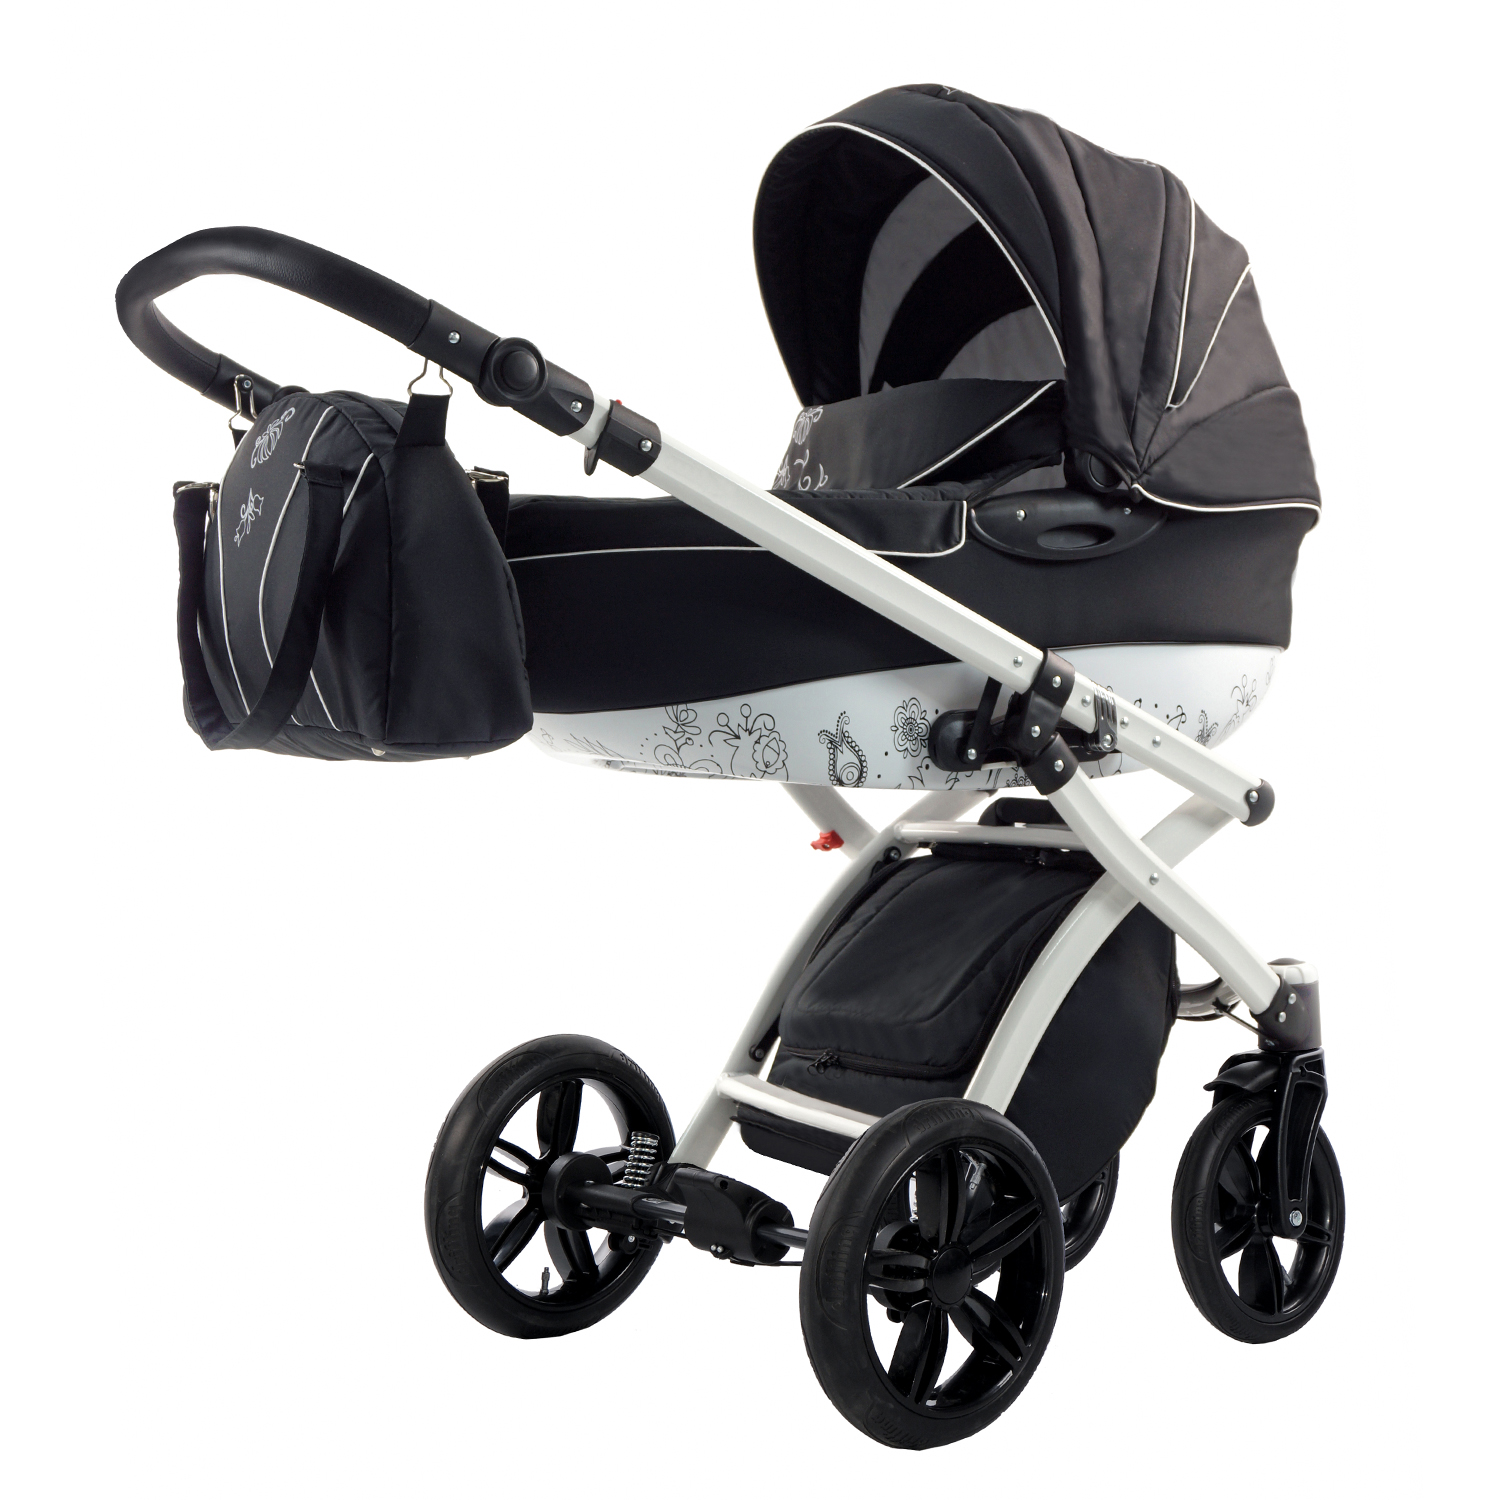 Kinderwagen Test Knorr About Apartments Knorr Baby